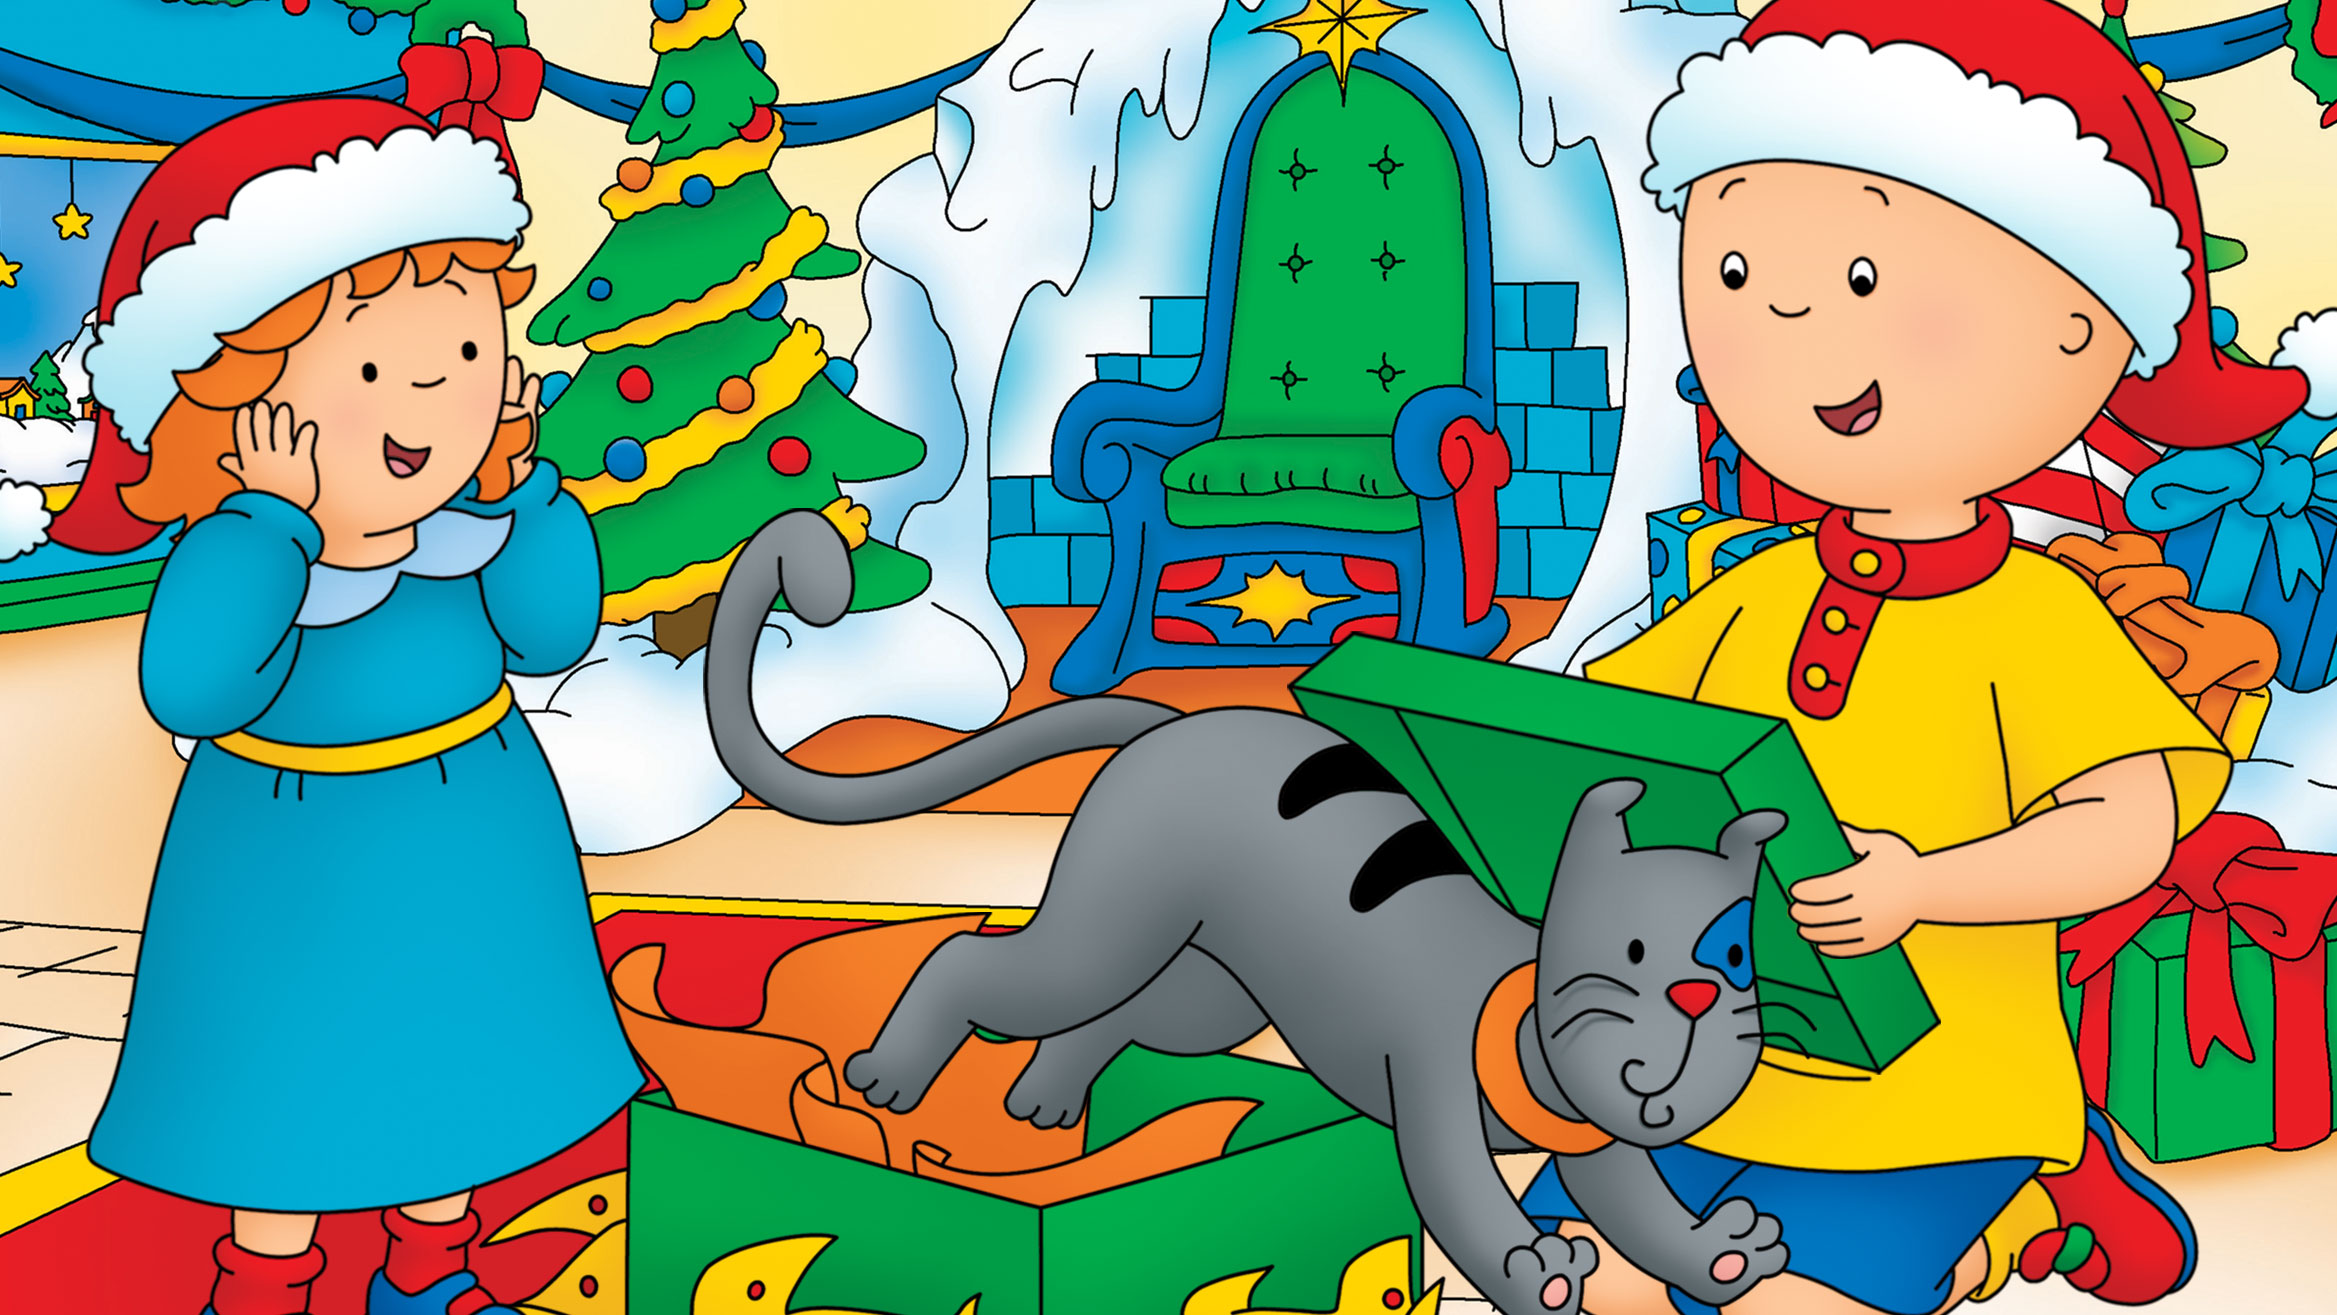 Caillou Celebrates The Holidays with New Caillou Holiday Toy Box Set! post image